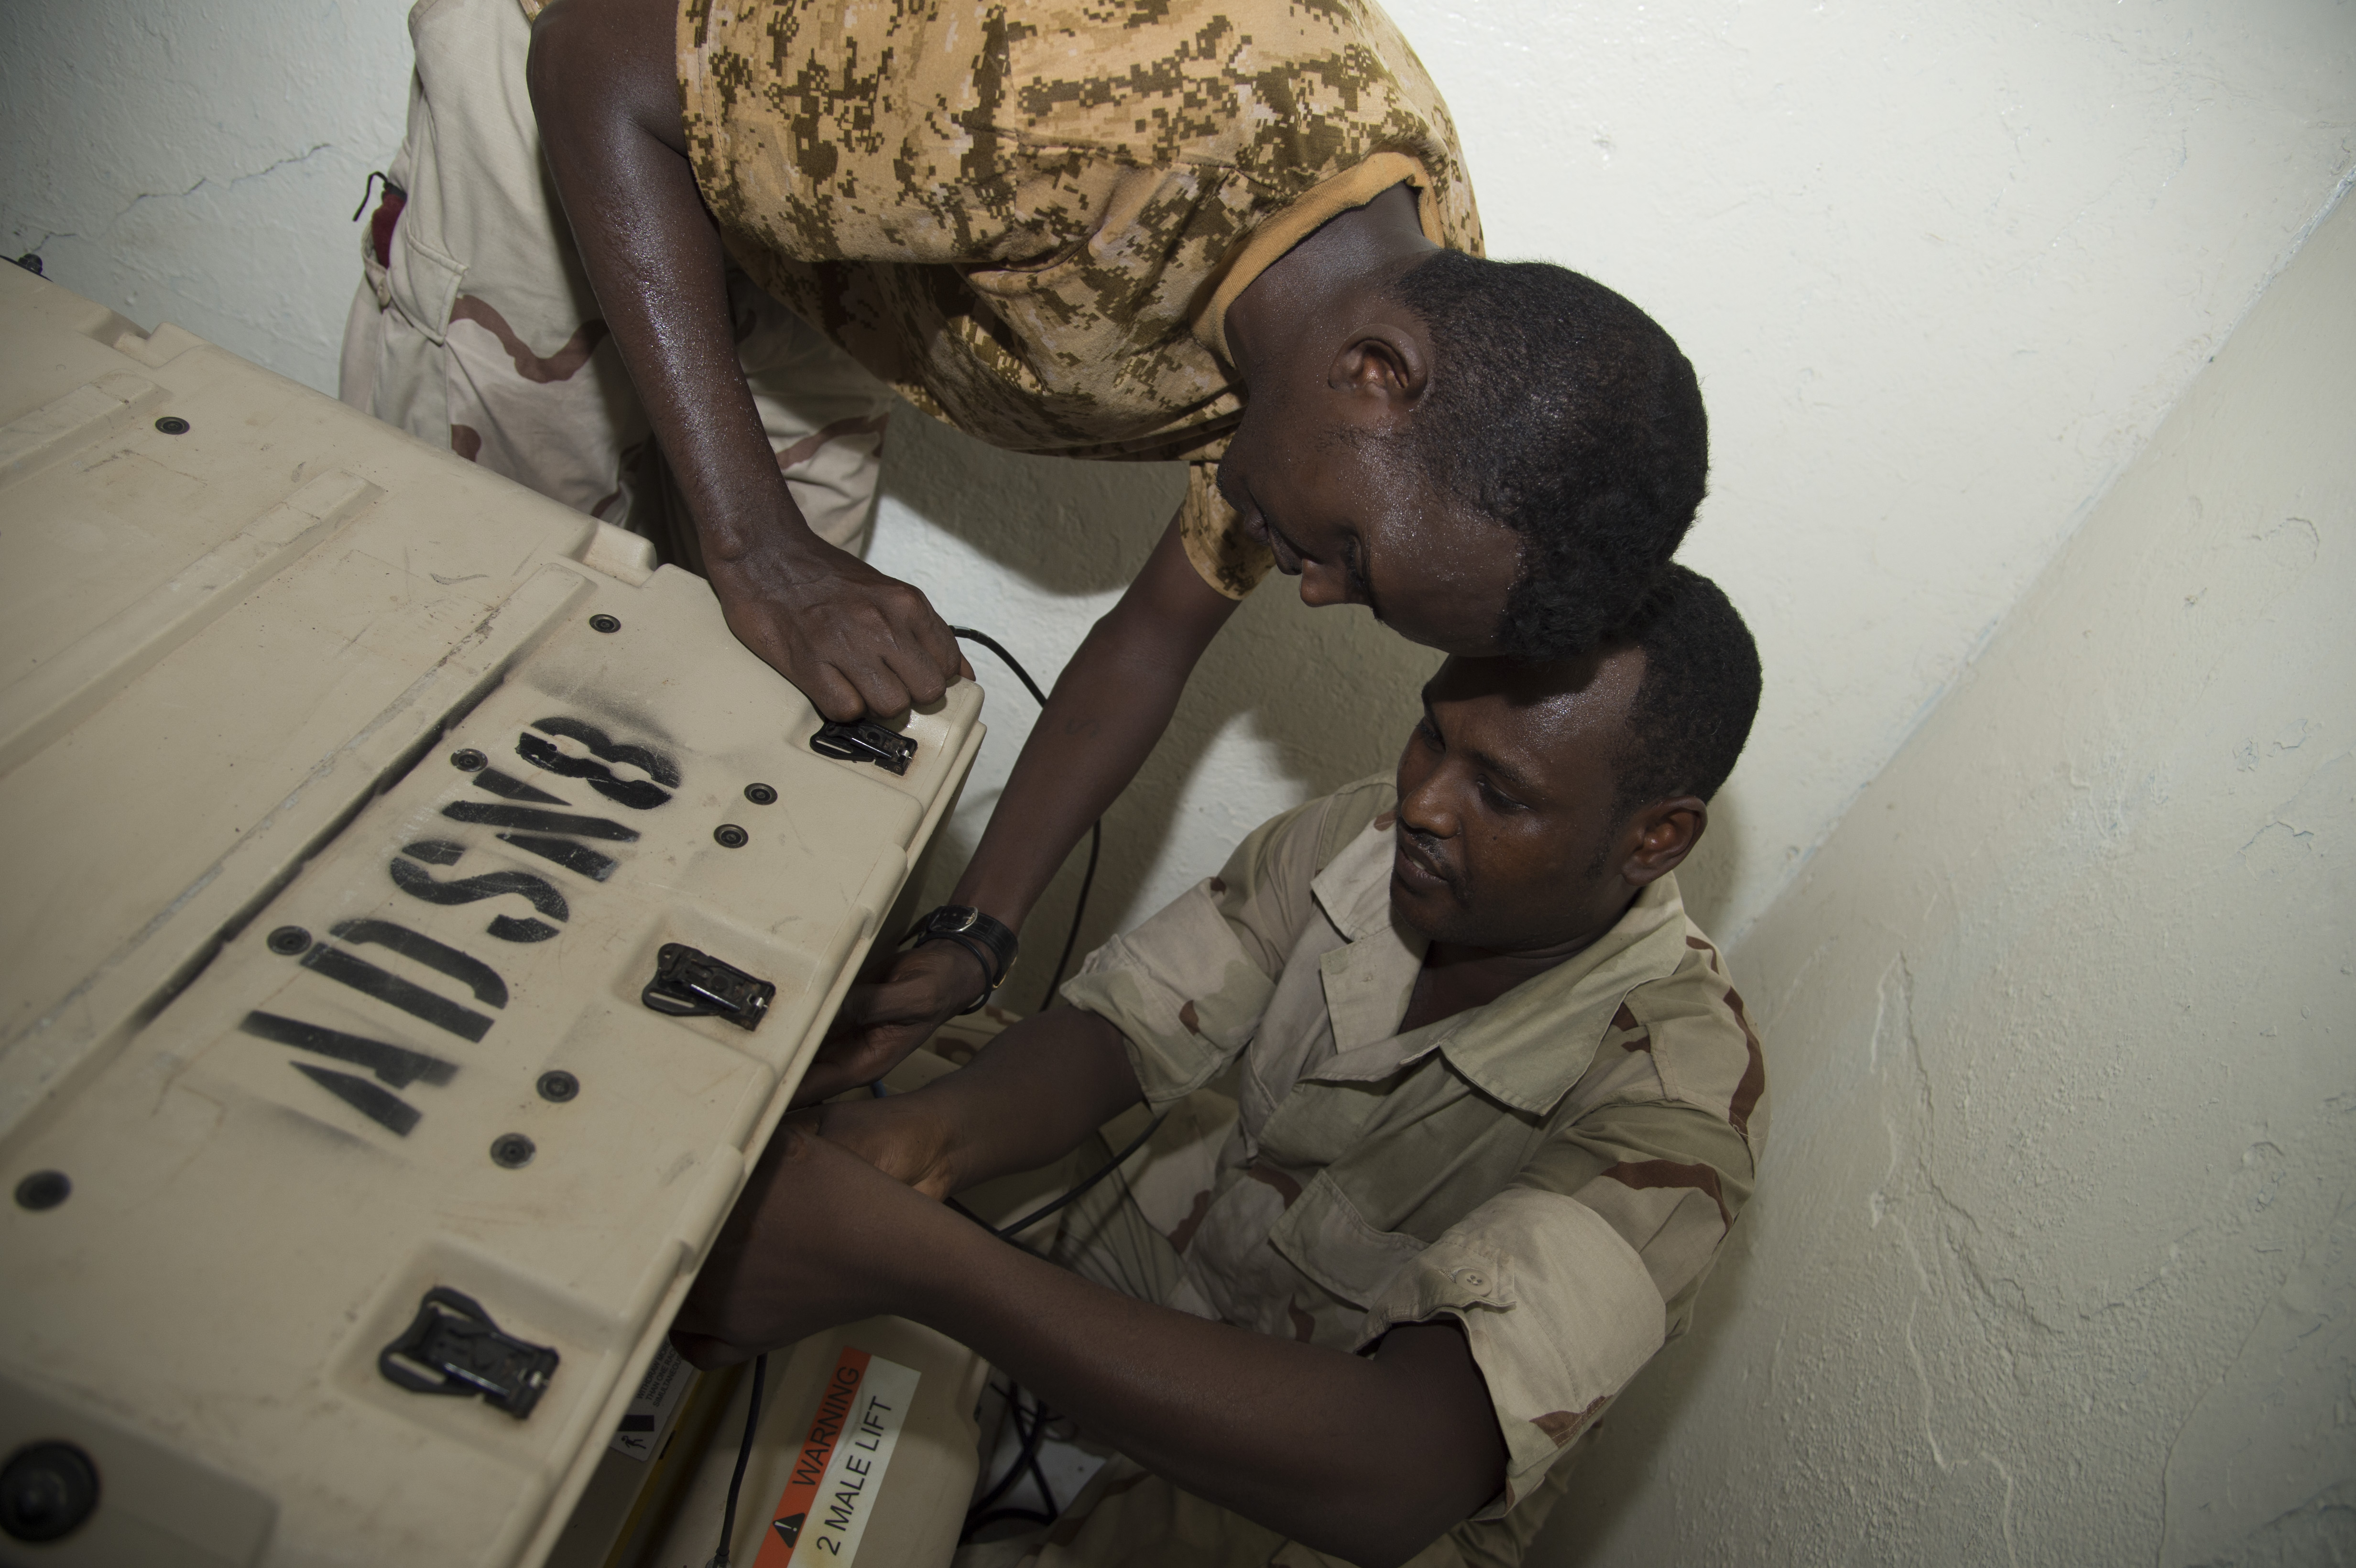 Djibouti Armed Forces (FAD) service members set up a modem for the Africa Data Sharing Network (ADSN) during a training validation Sept. 29, 2016, at FAD Headquarters in Djibouti. While conducting the best practices training, the U.S. Army, assigned to Combined Joint Task-Horn of Africa, also held an ADSN validation with the FAD soldiers to prepare them to deploy to Somalia.  The ADSN provides network and Voice over Internet Protocol capabilities between the several African countries participating in the Africa Union Mission in Somalia. (U.S. Air Force photo by Staff Sgt. Eric Summers Jr.)